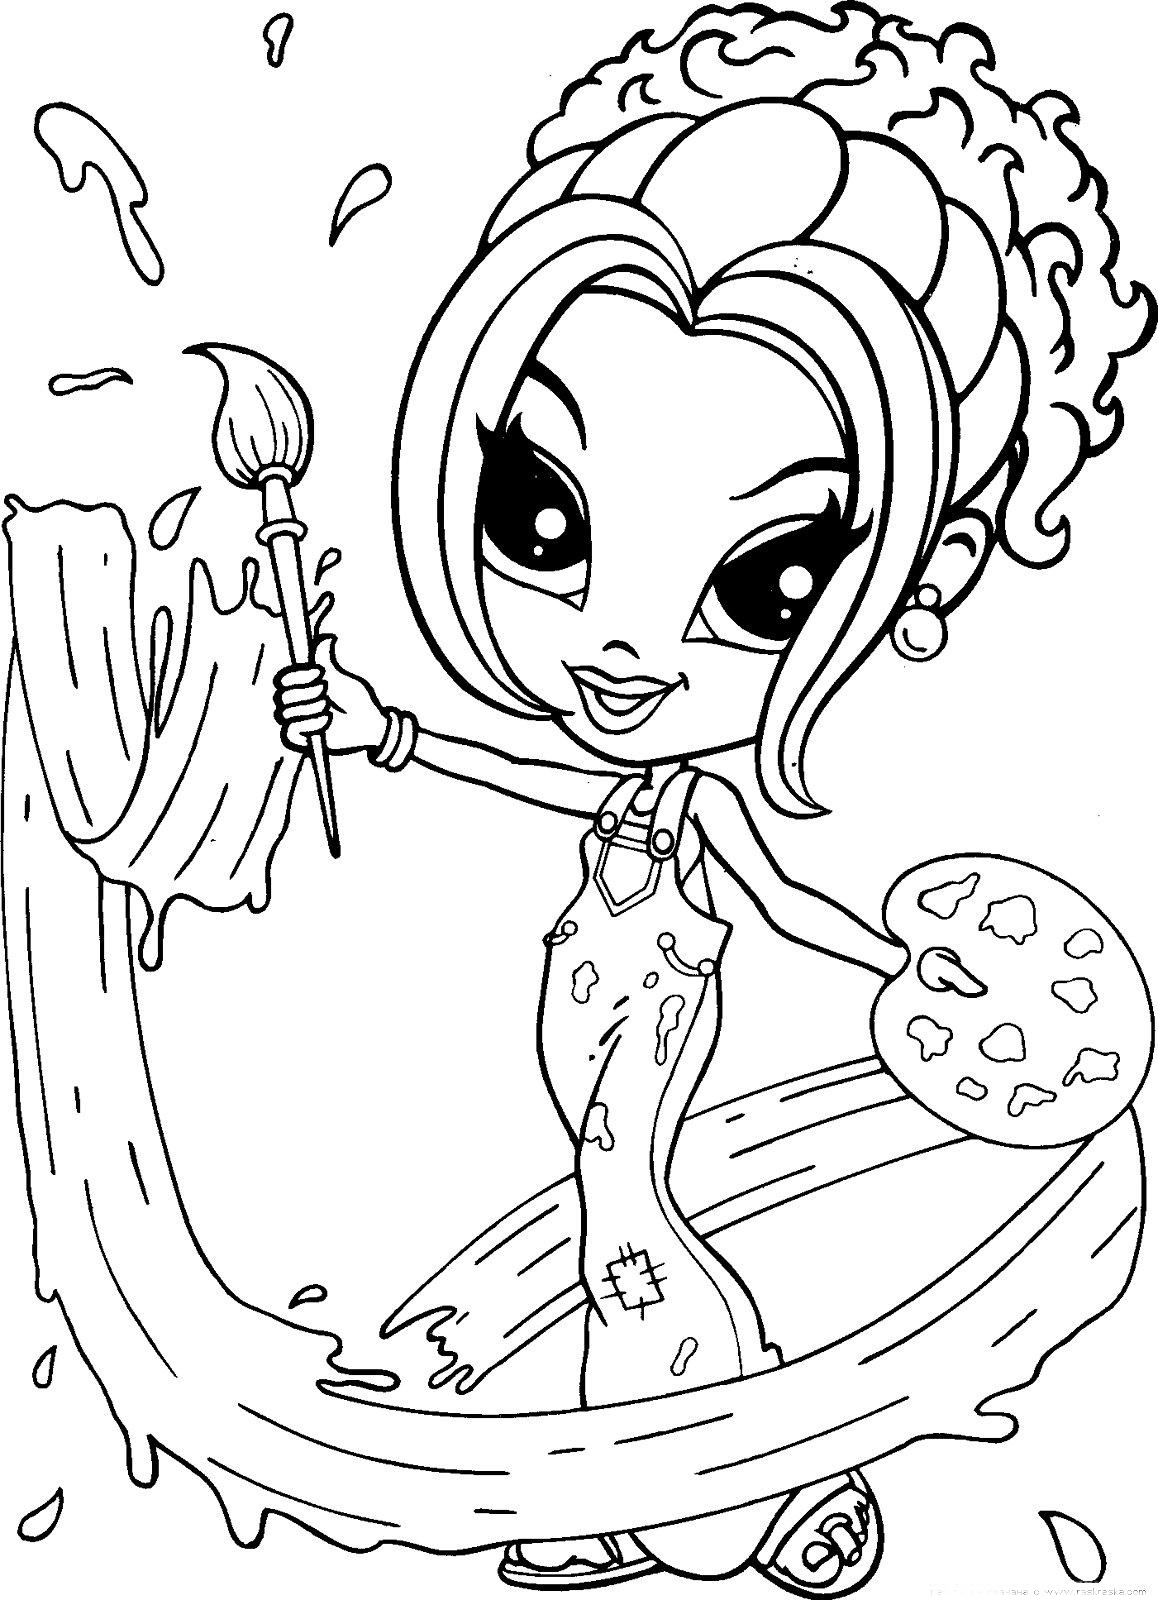 coloring pages printables lps coloring pages to download and print for free coloring printables pages